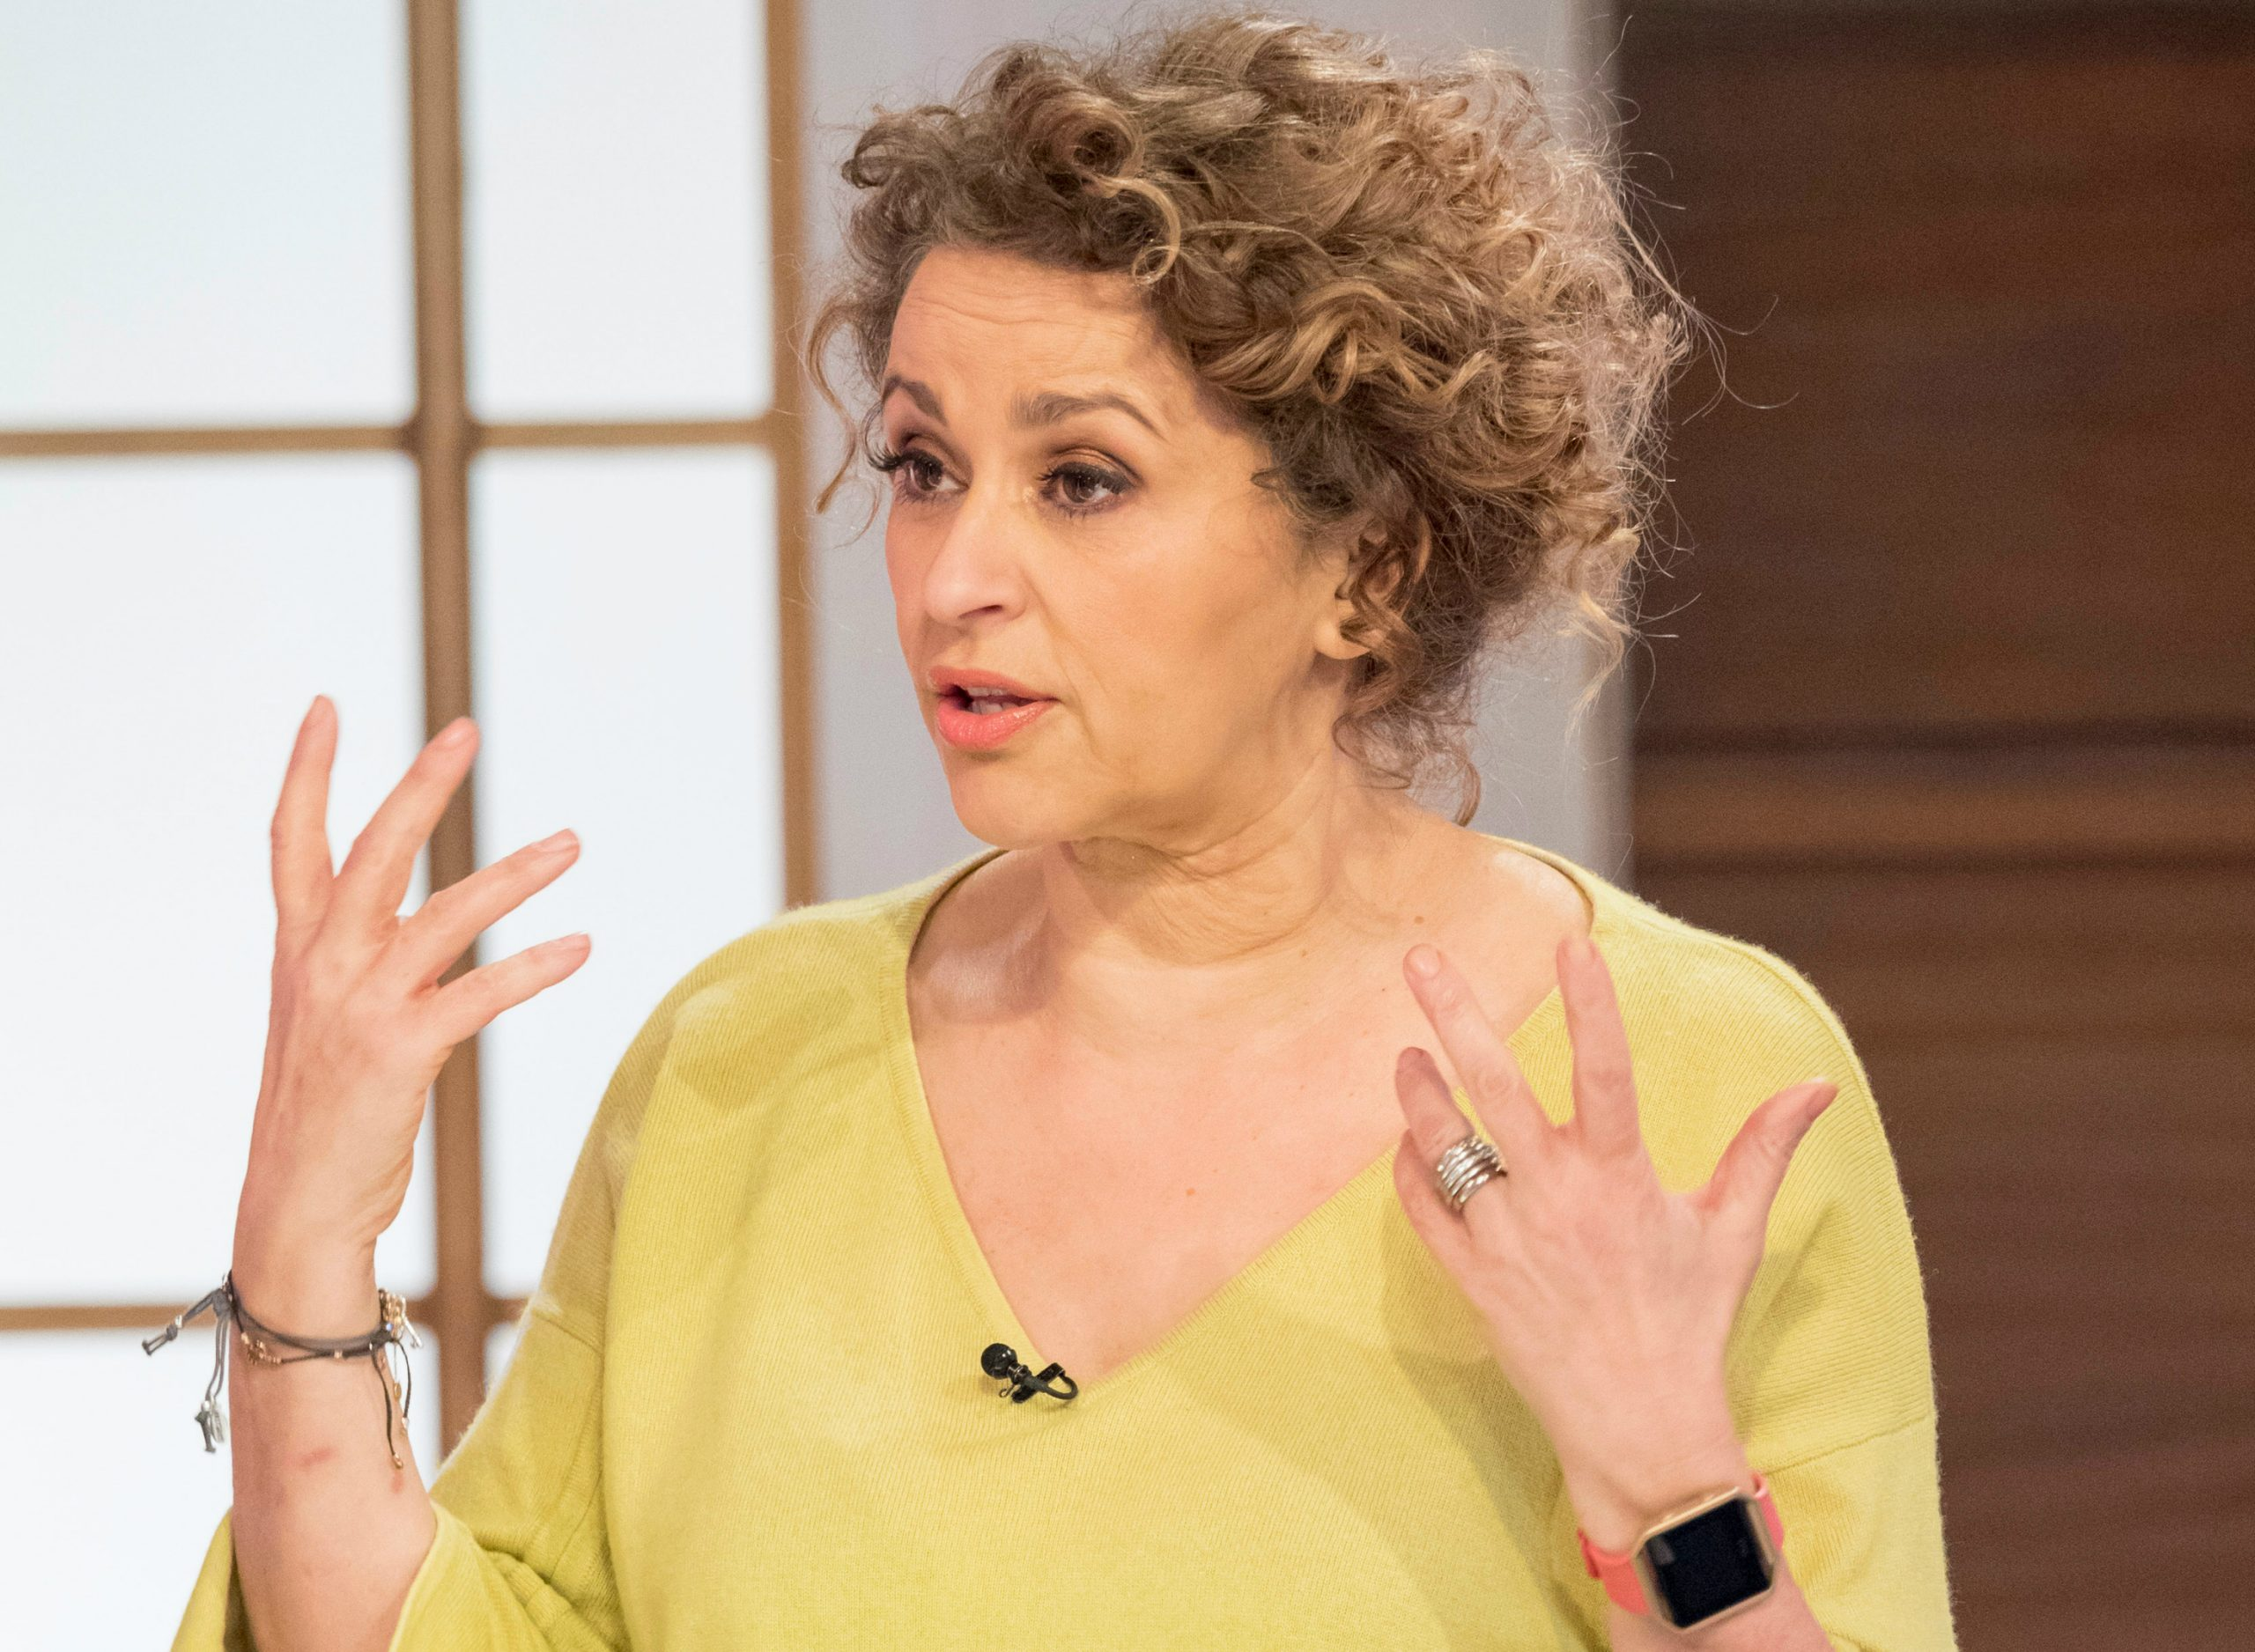 Nadia Sawalha Opens Up About Her Menopausal Eczema How She Cures It